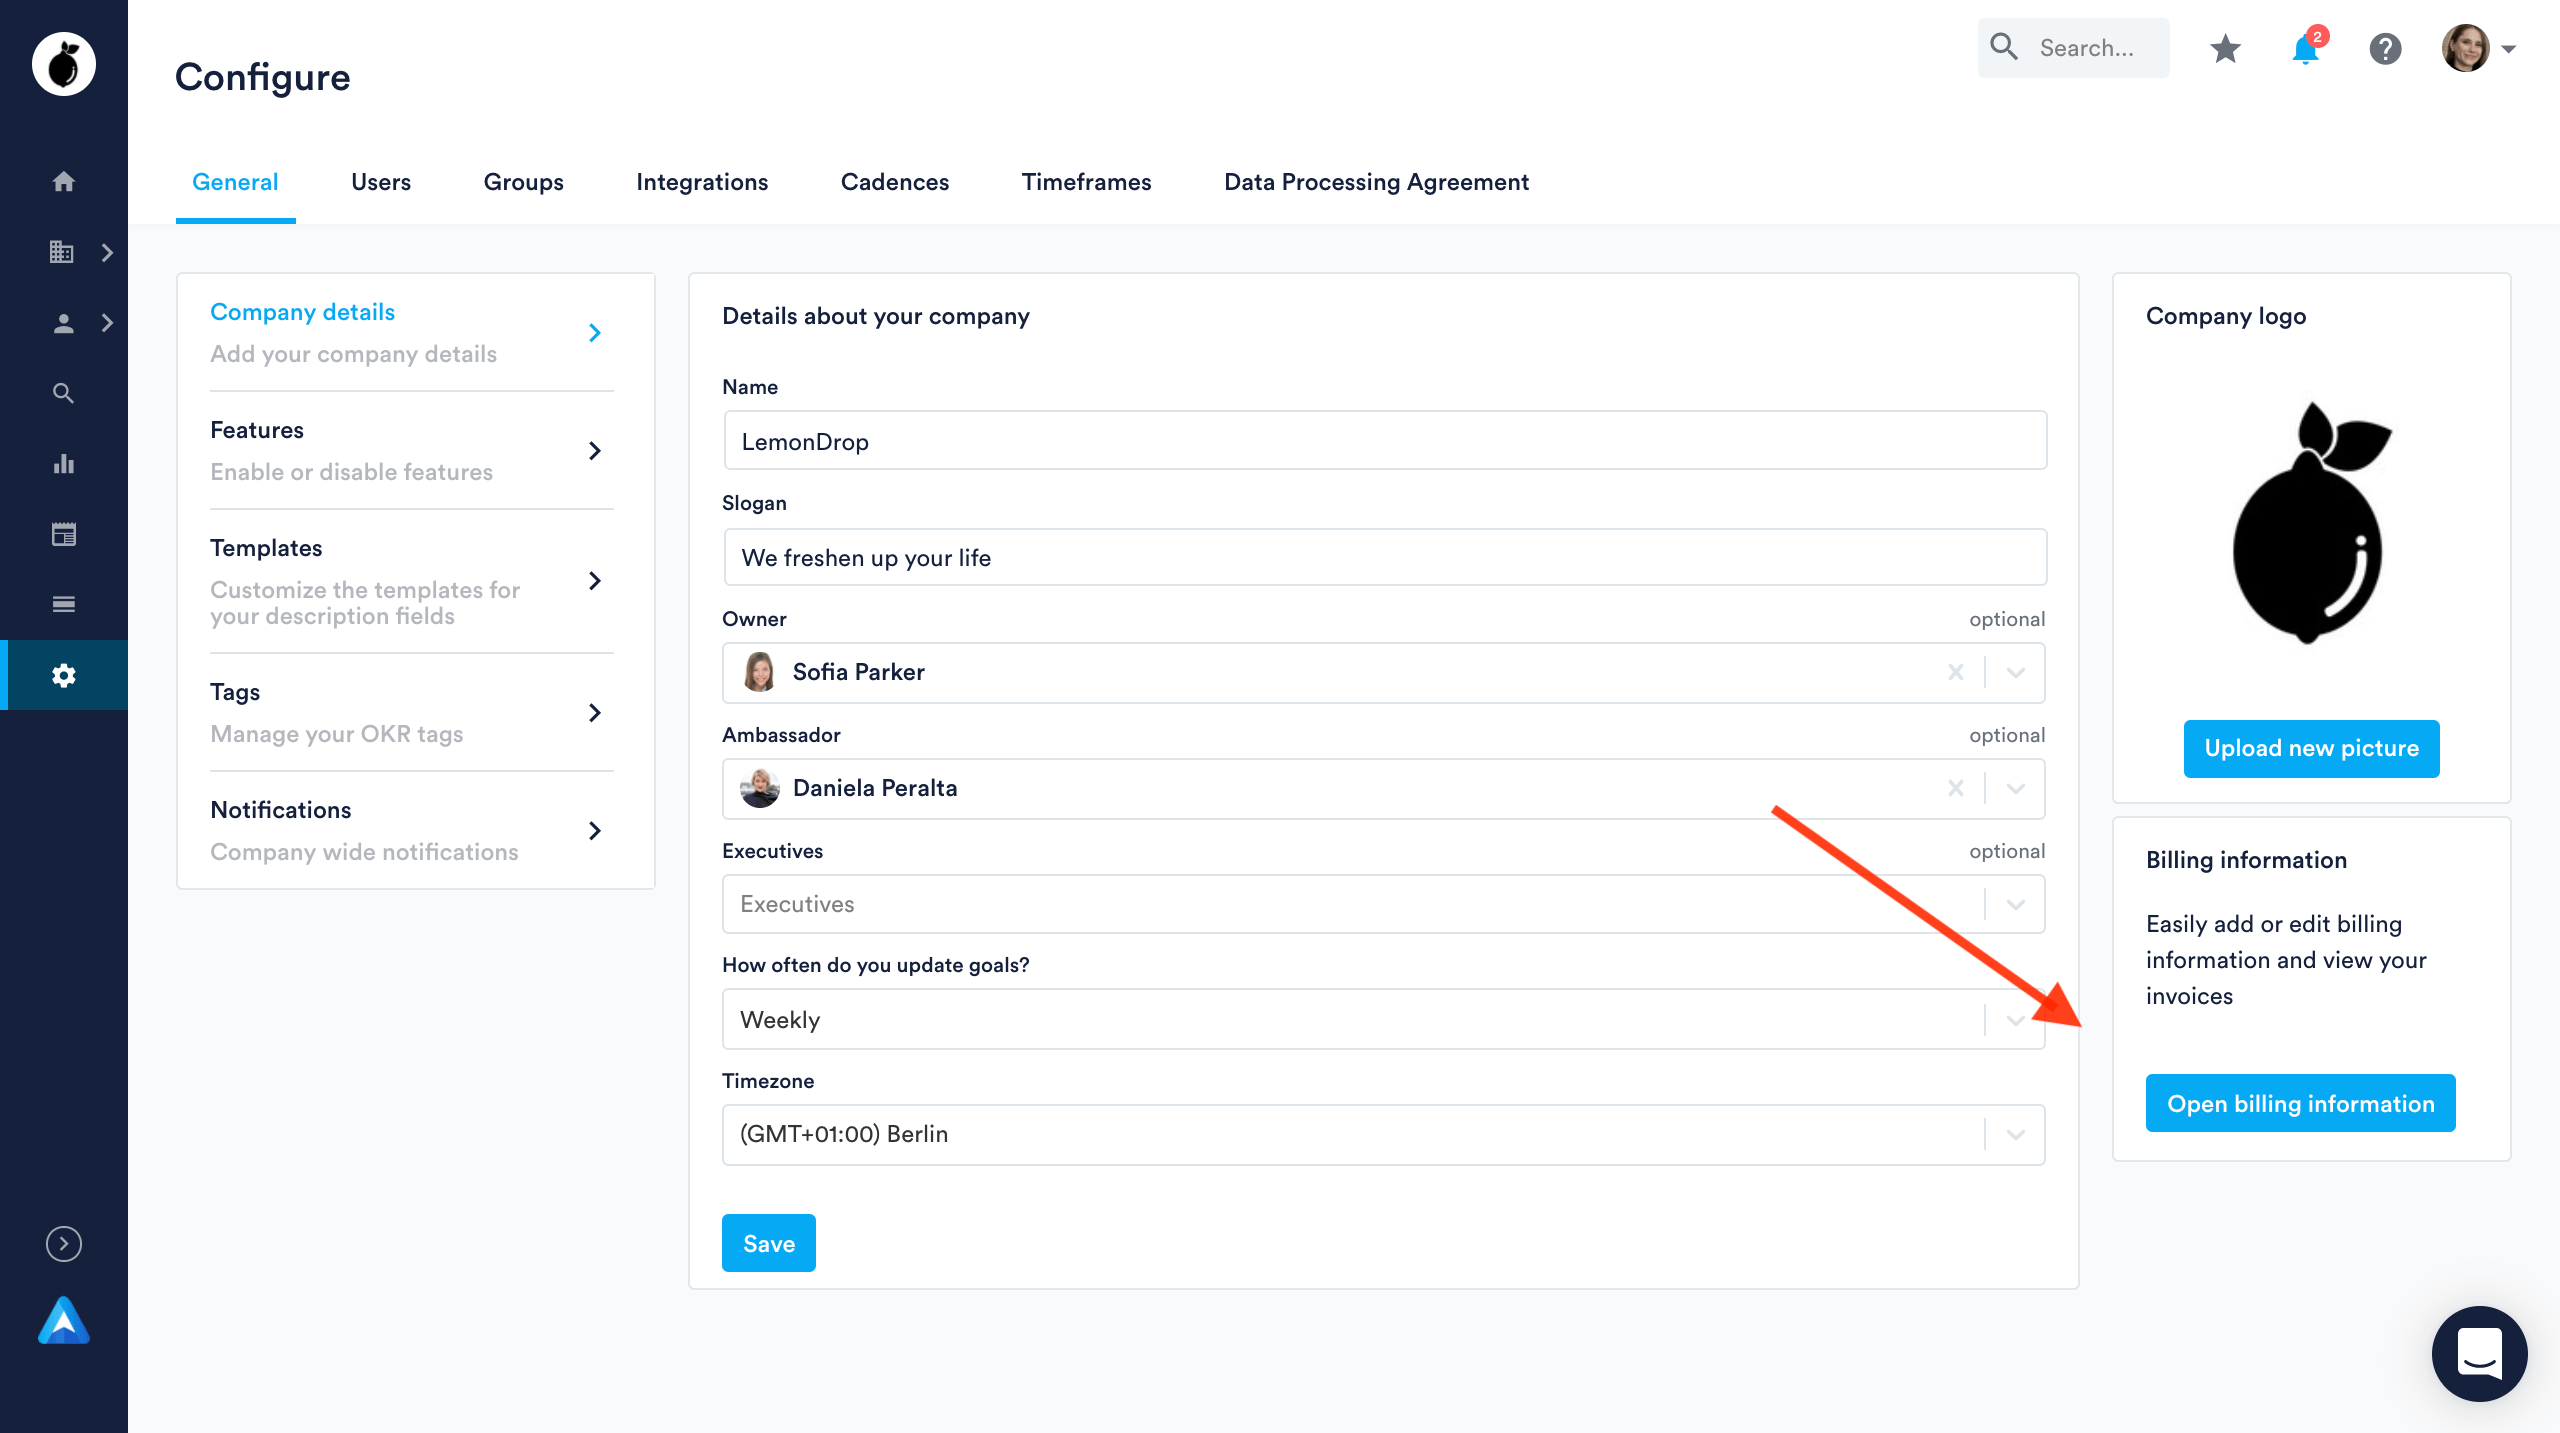 Configure page to Open billing information